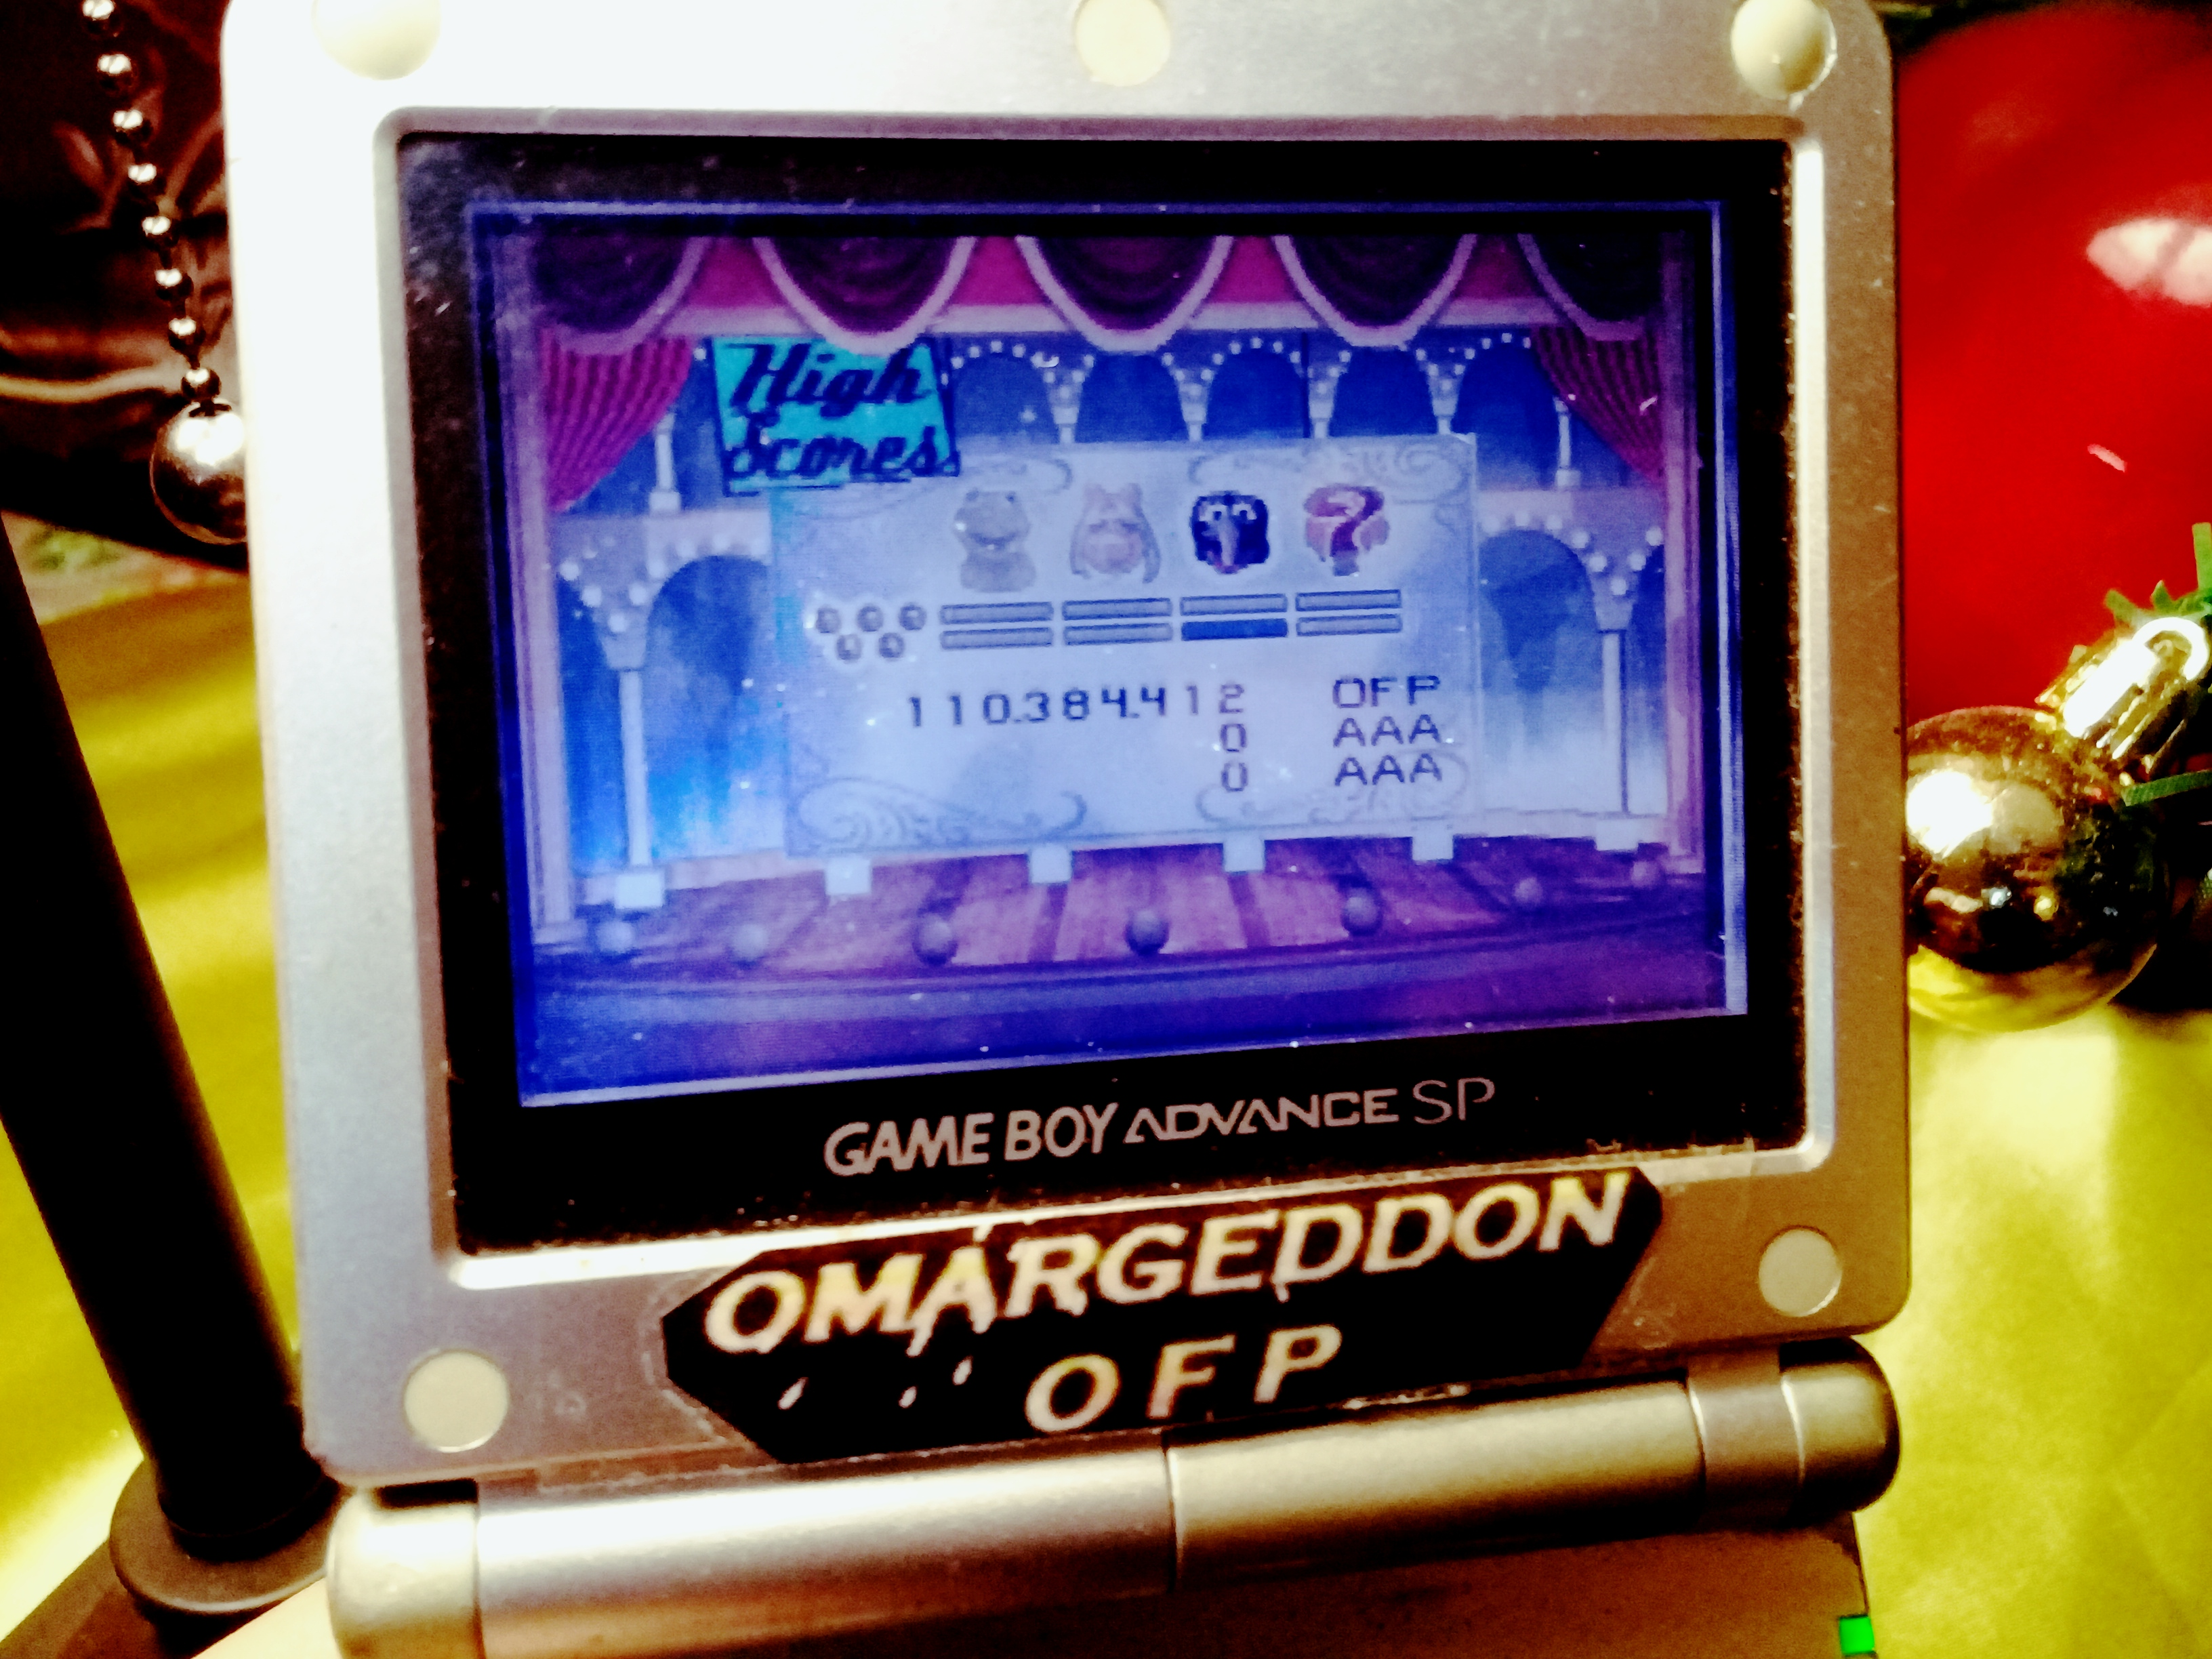 omargeddon: Muppet Pinball Mayhem: Konzo [5 Balls] (GBA) 110,384,412 points on 2019-12-26 17:14:49